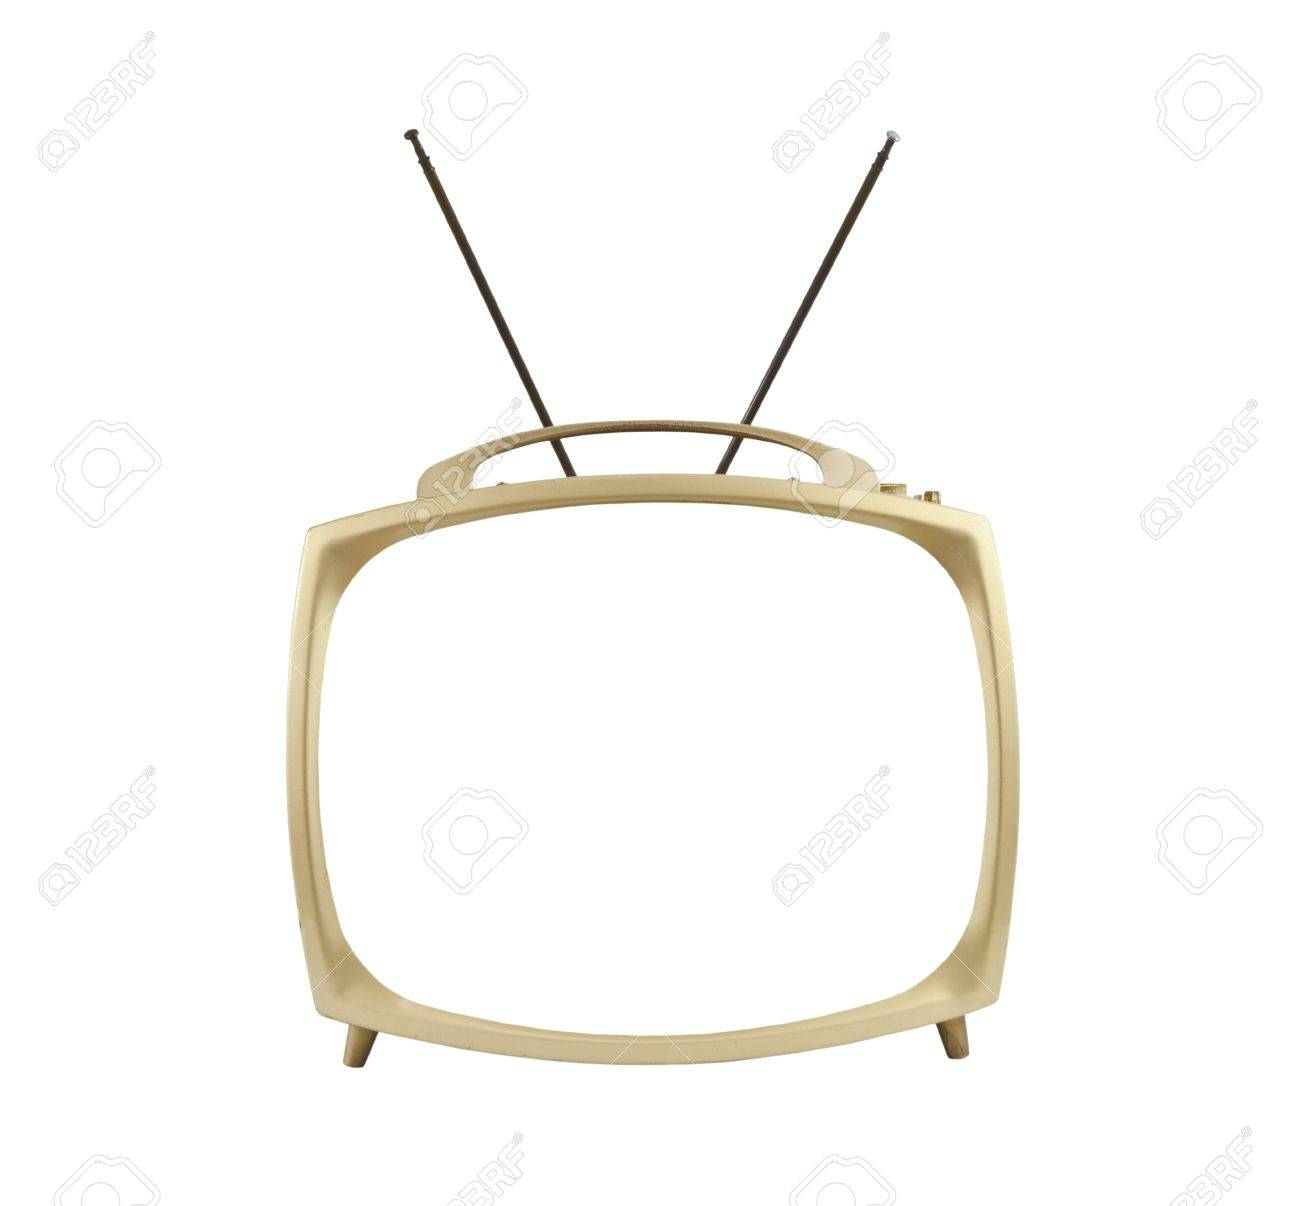 1950's portable television with antennas up.  Isolated with blanked screen. Stock Photo - 12428536